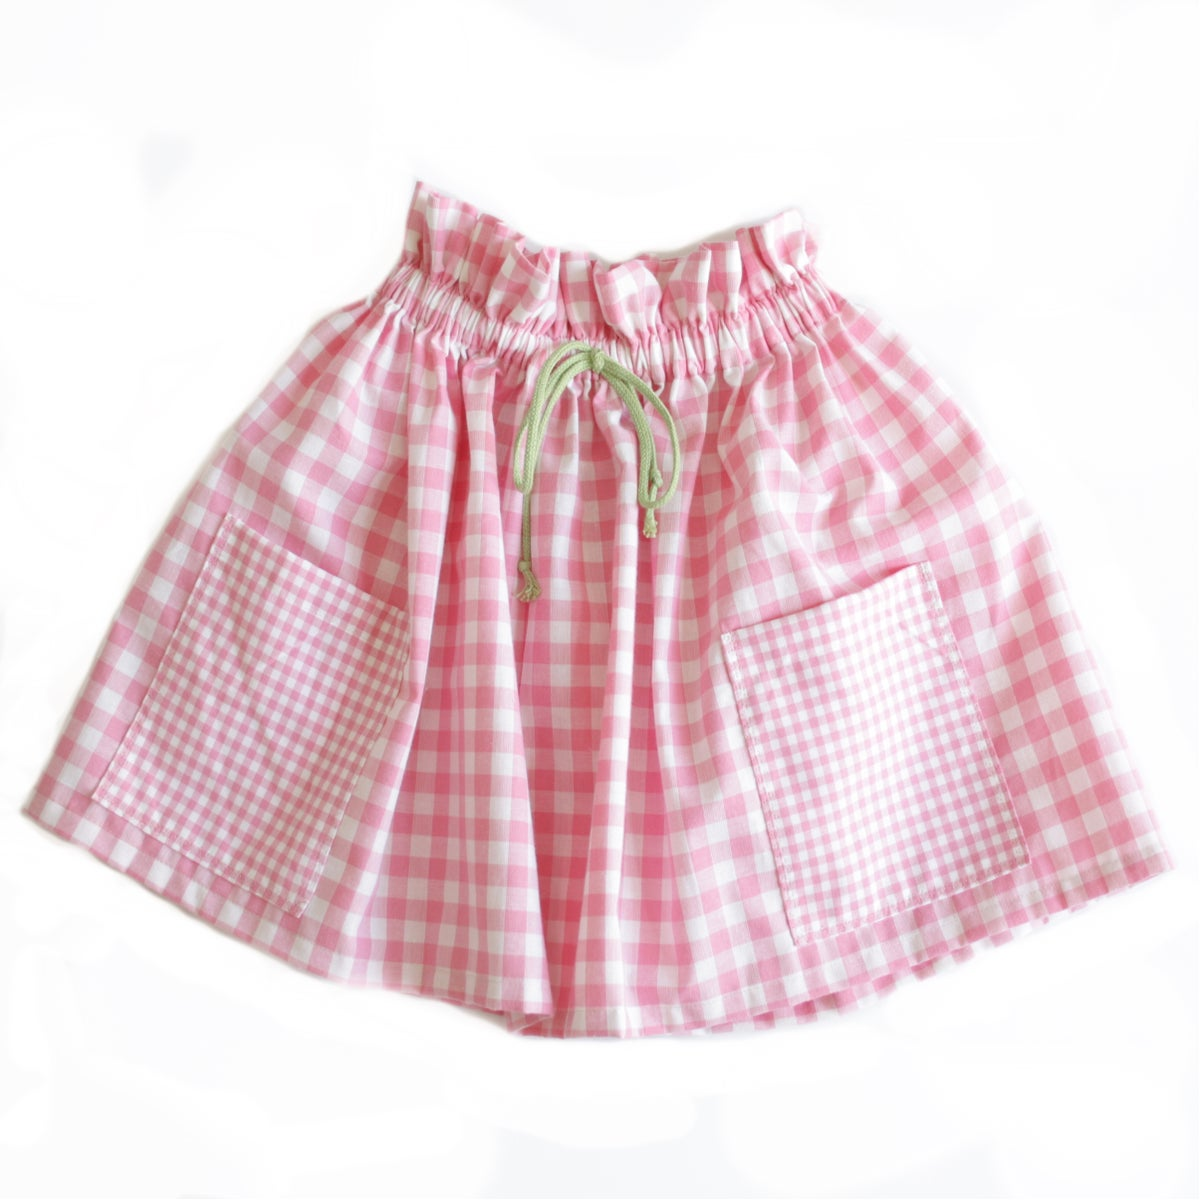 Market Skirt-pink check